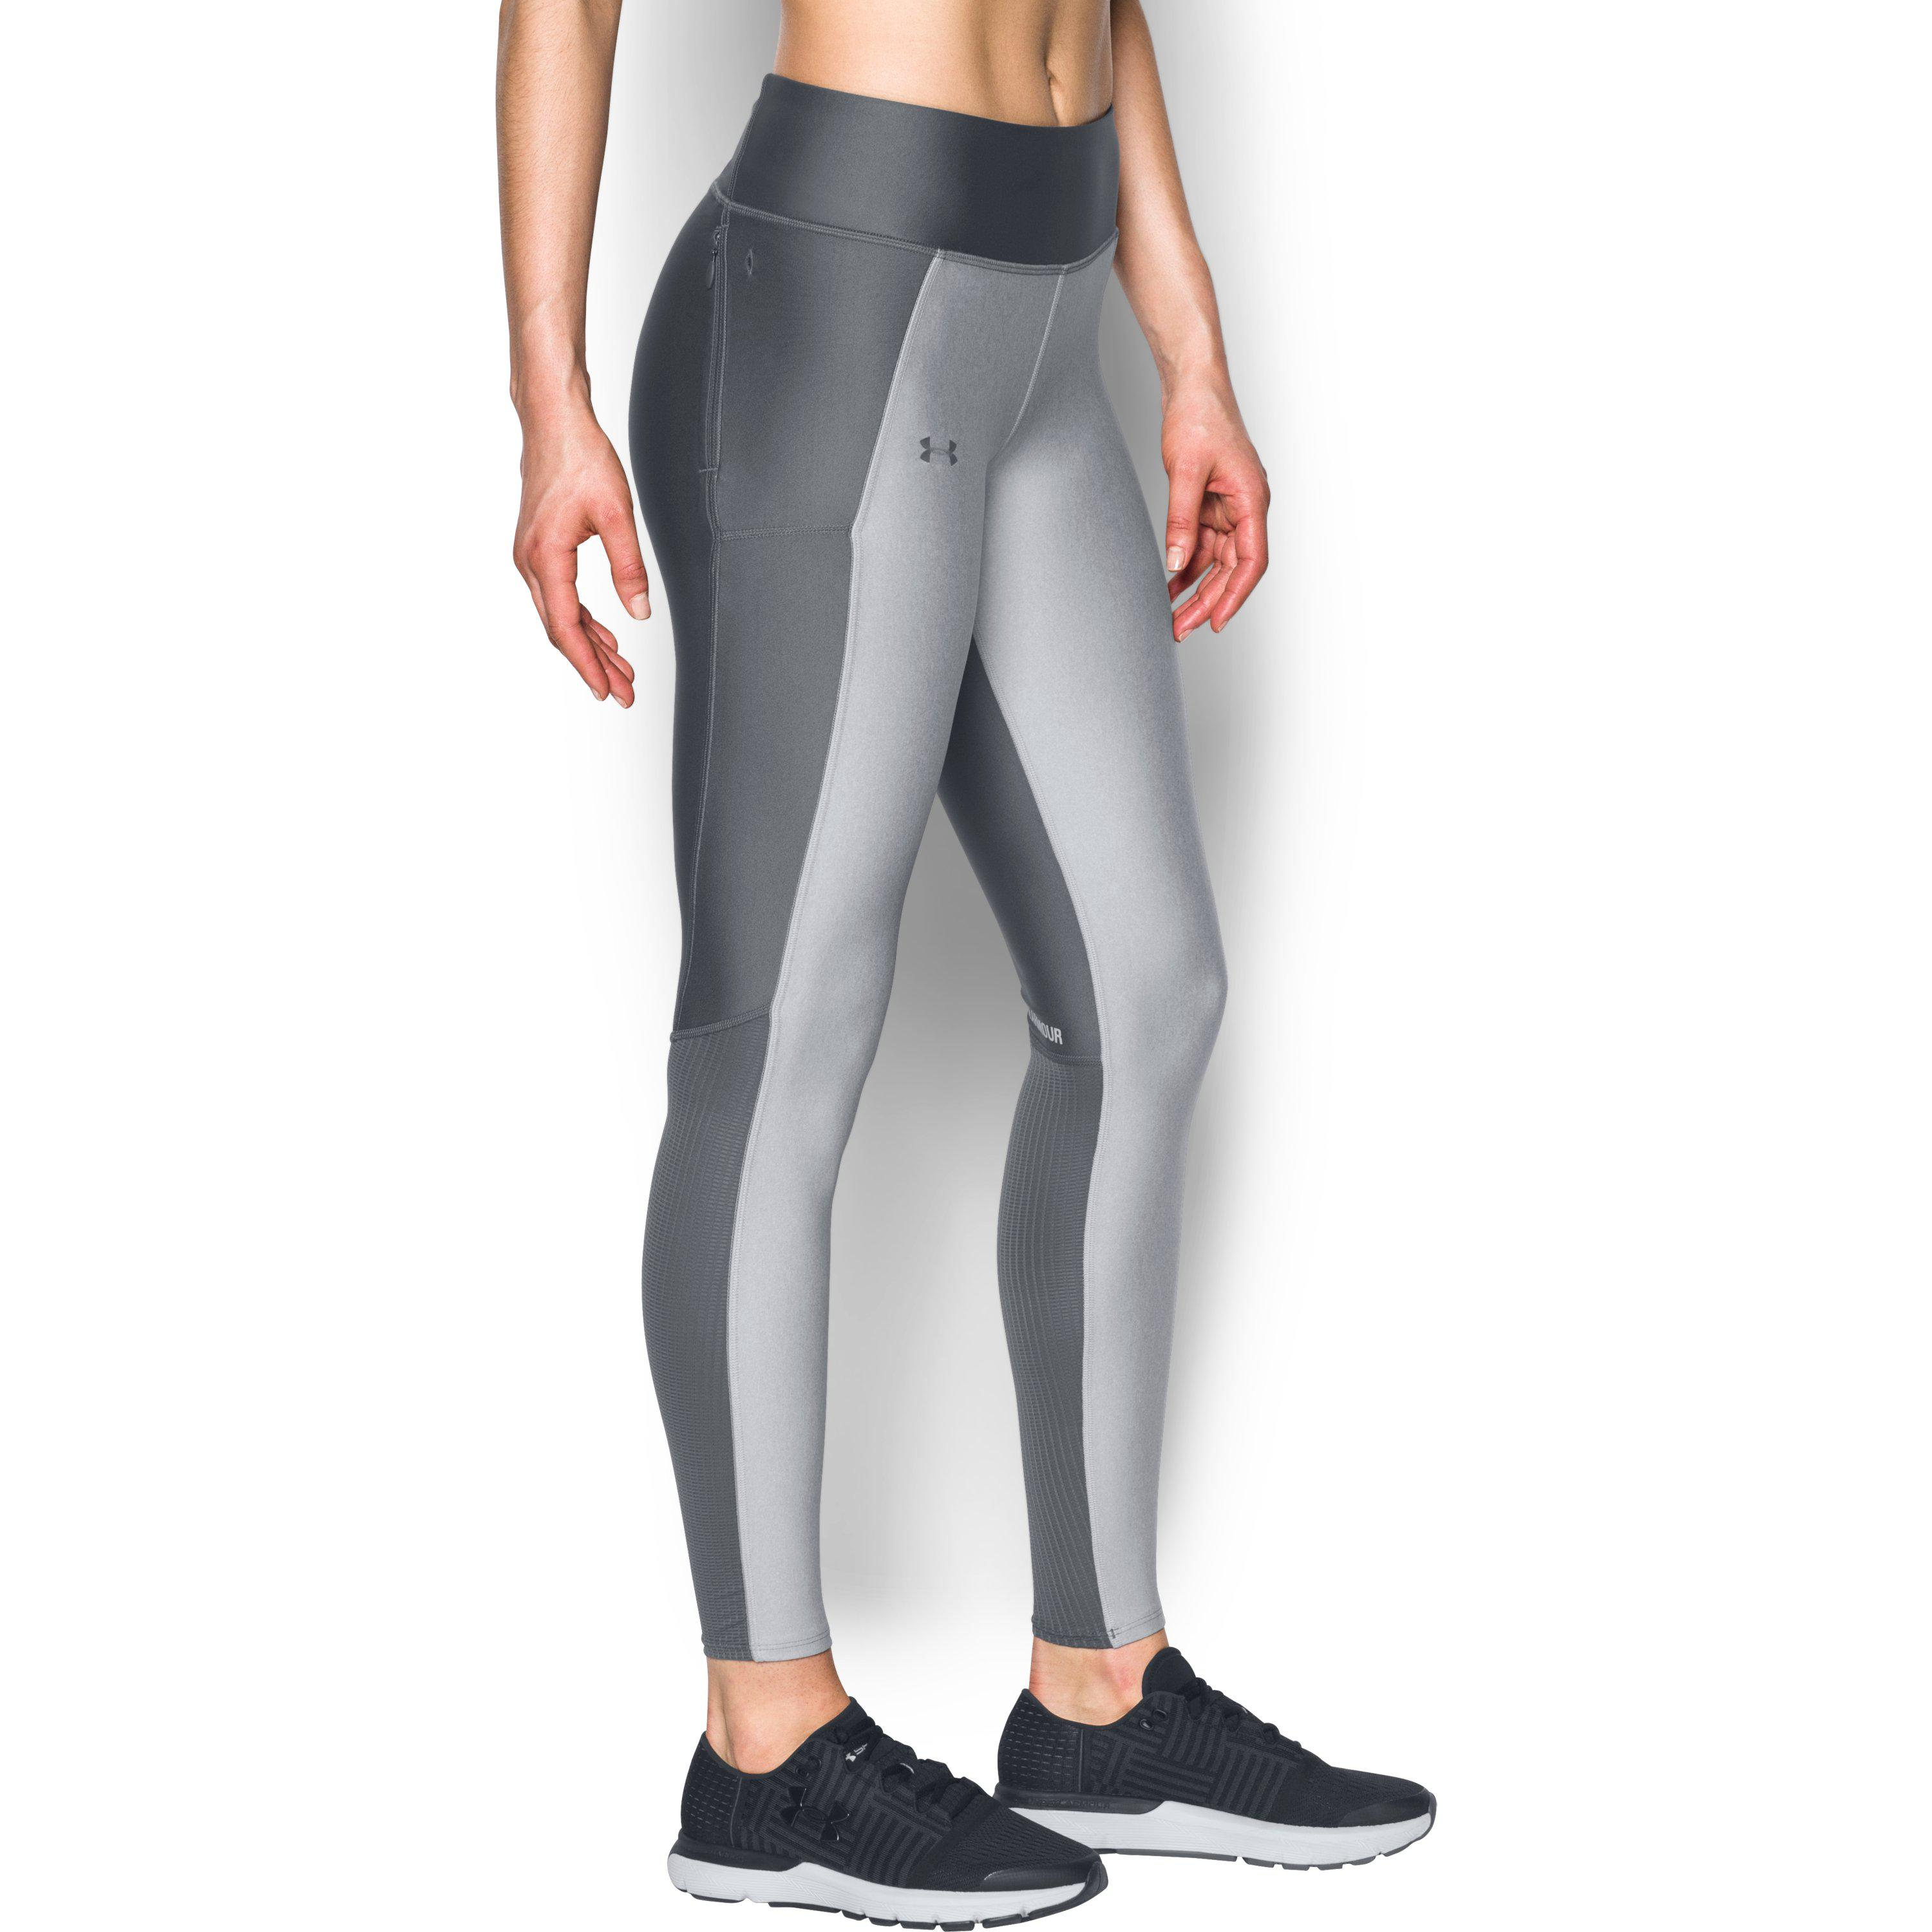 6a169ef71a0f0 Lyst - Under Armour Women's Ua Fly-by Leggings in Gray